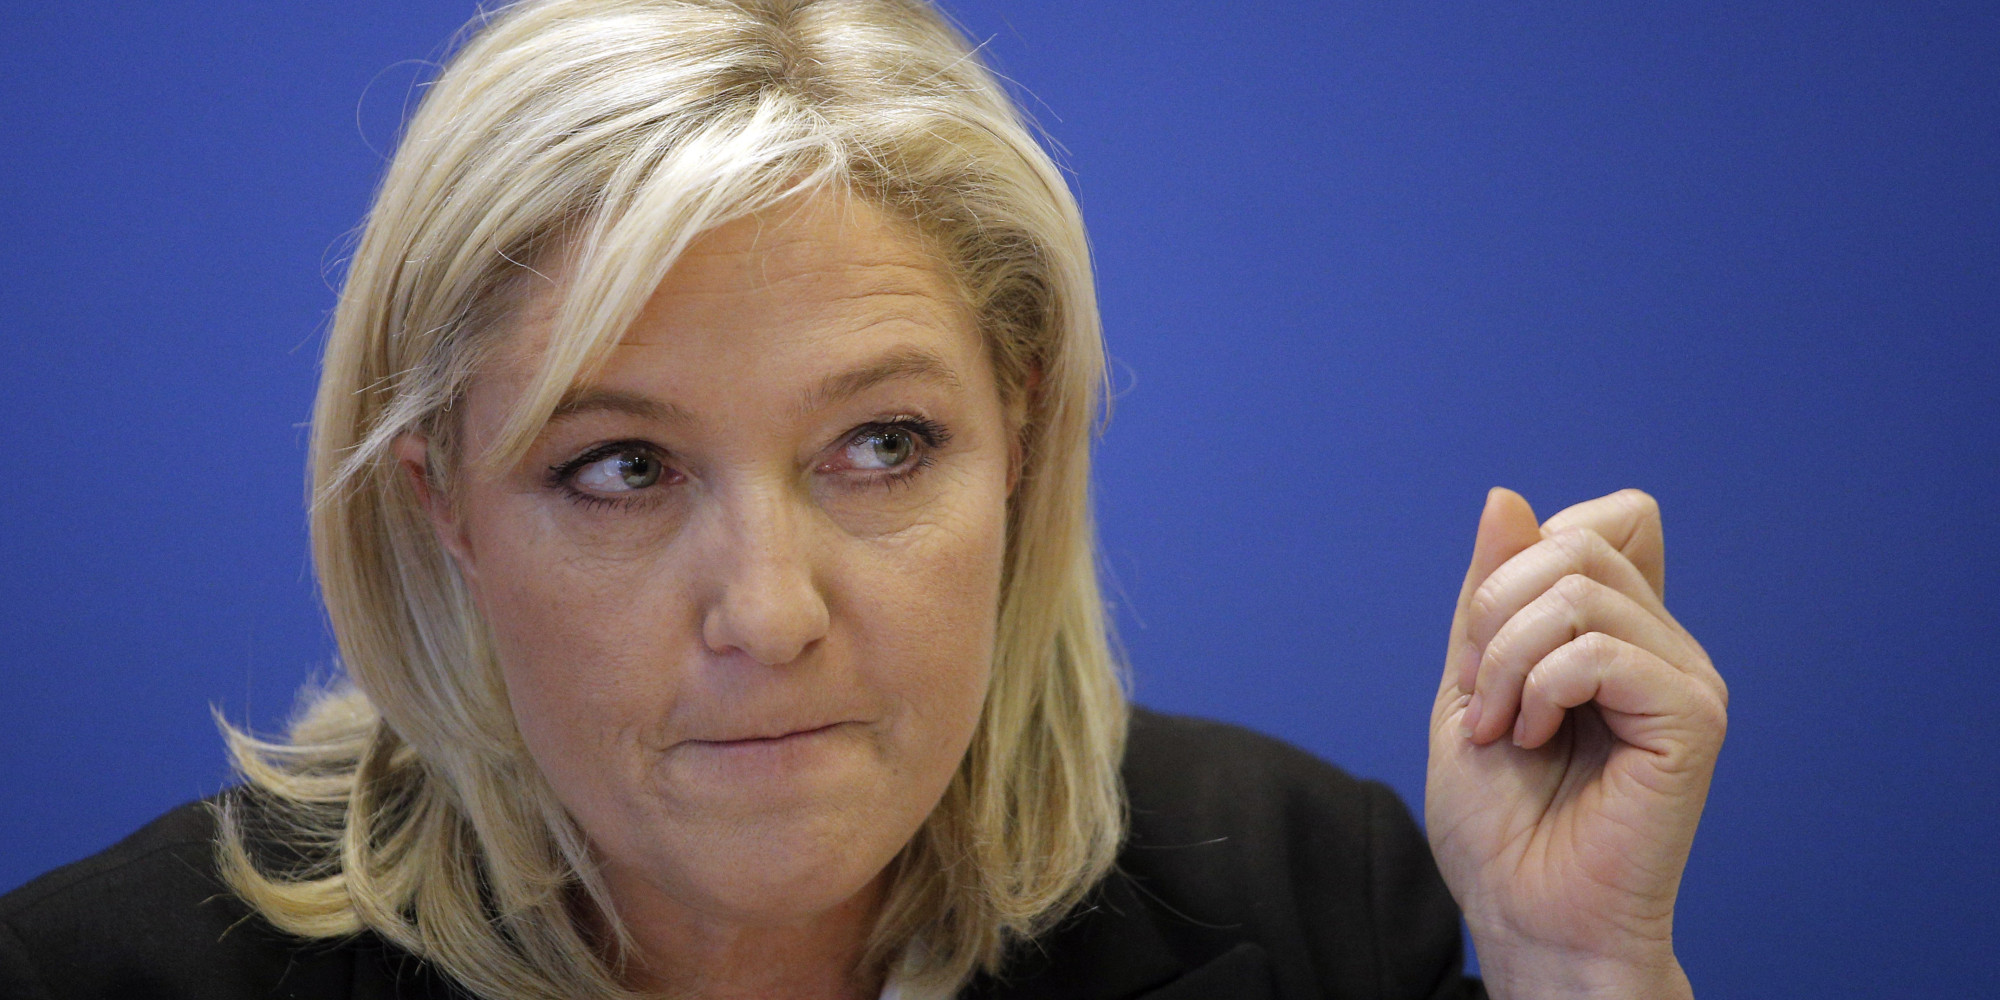 Marine Le Pen Leads French Presidential Poll